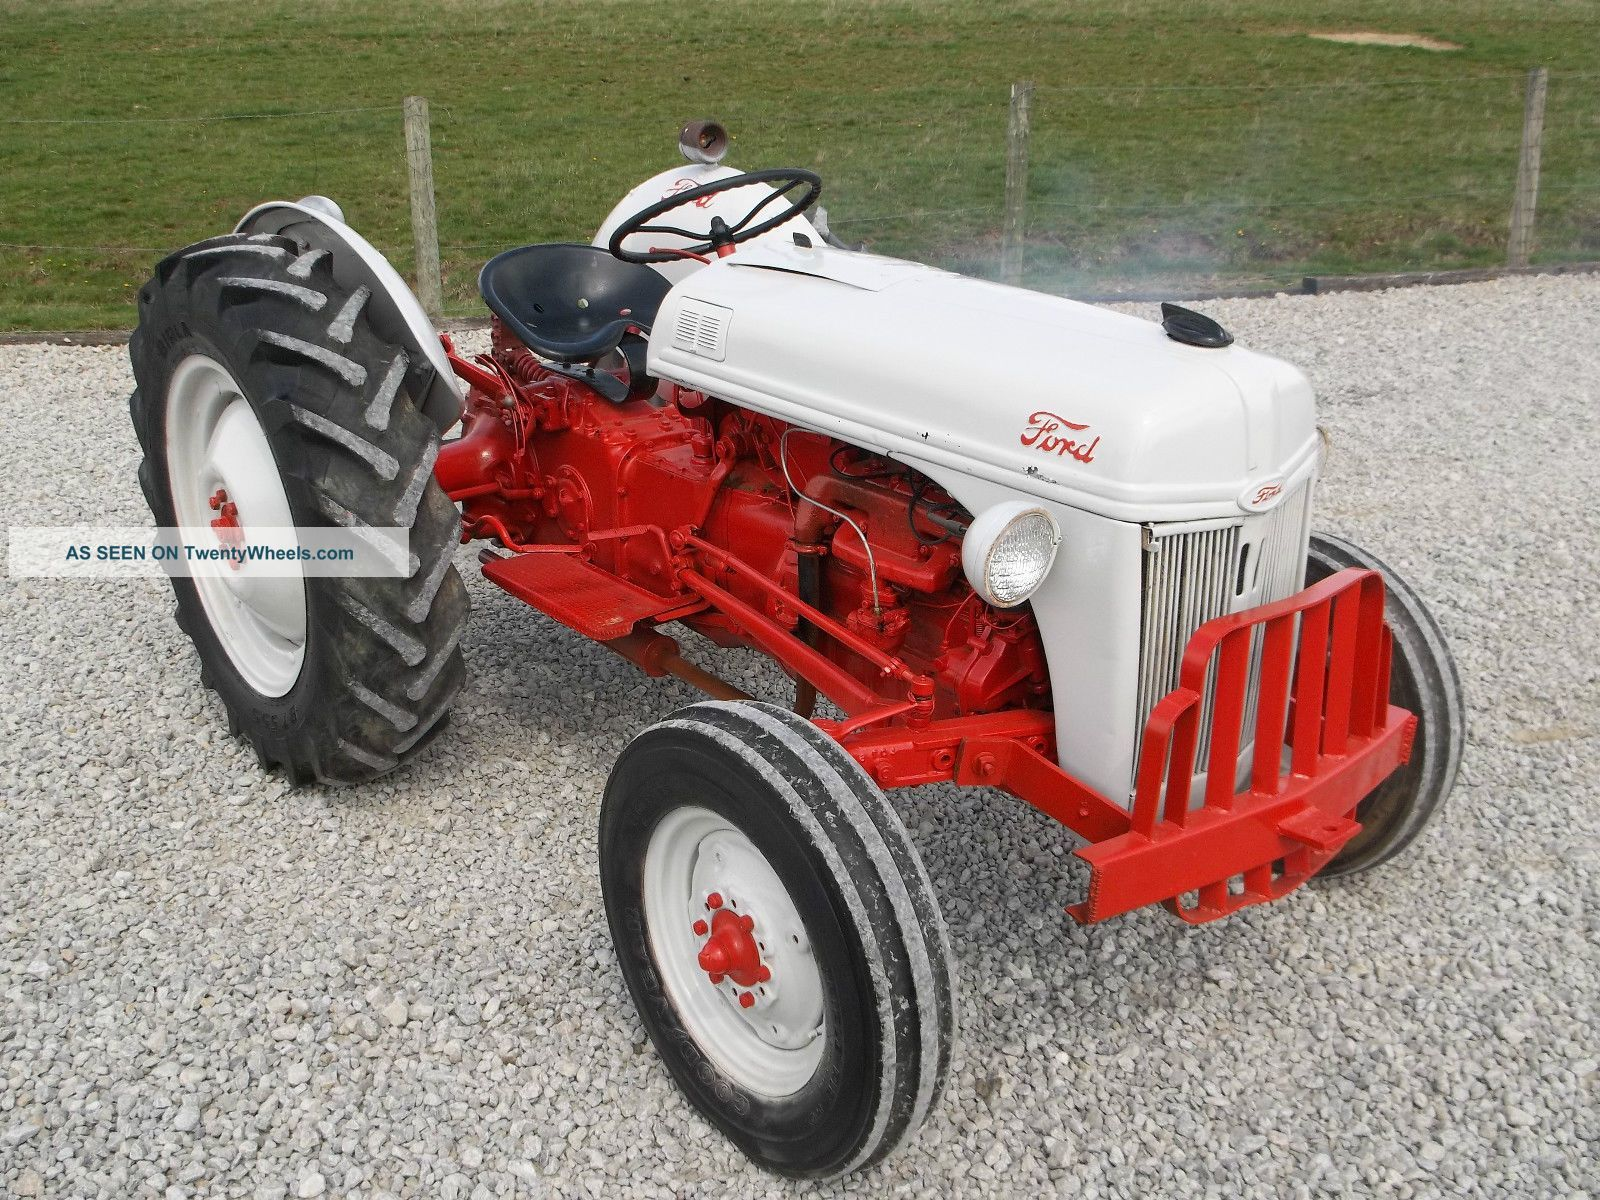 Ford 8n Tractors 1951 Ford 8n Tractor With Antique Vintage Farm Equip Ford 8n Tractor Tractors Ford Tractors